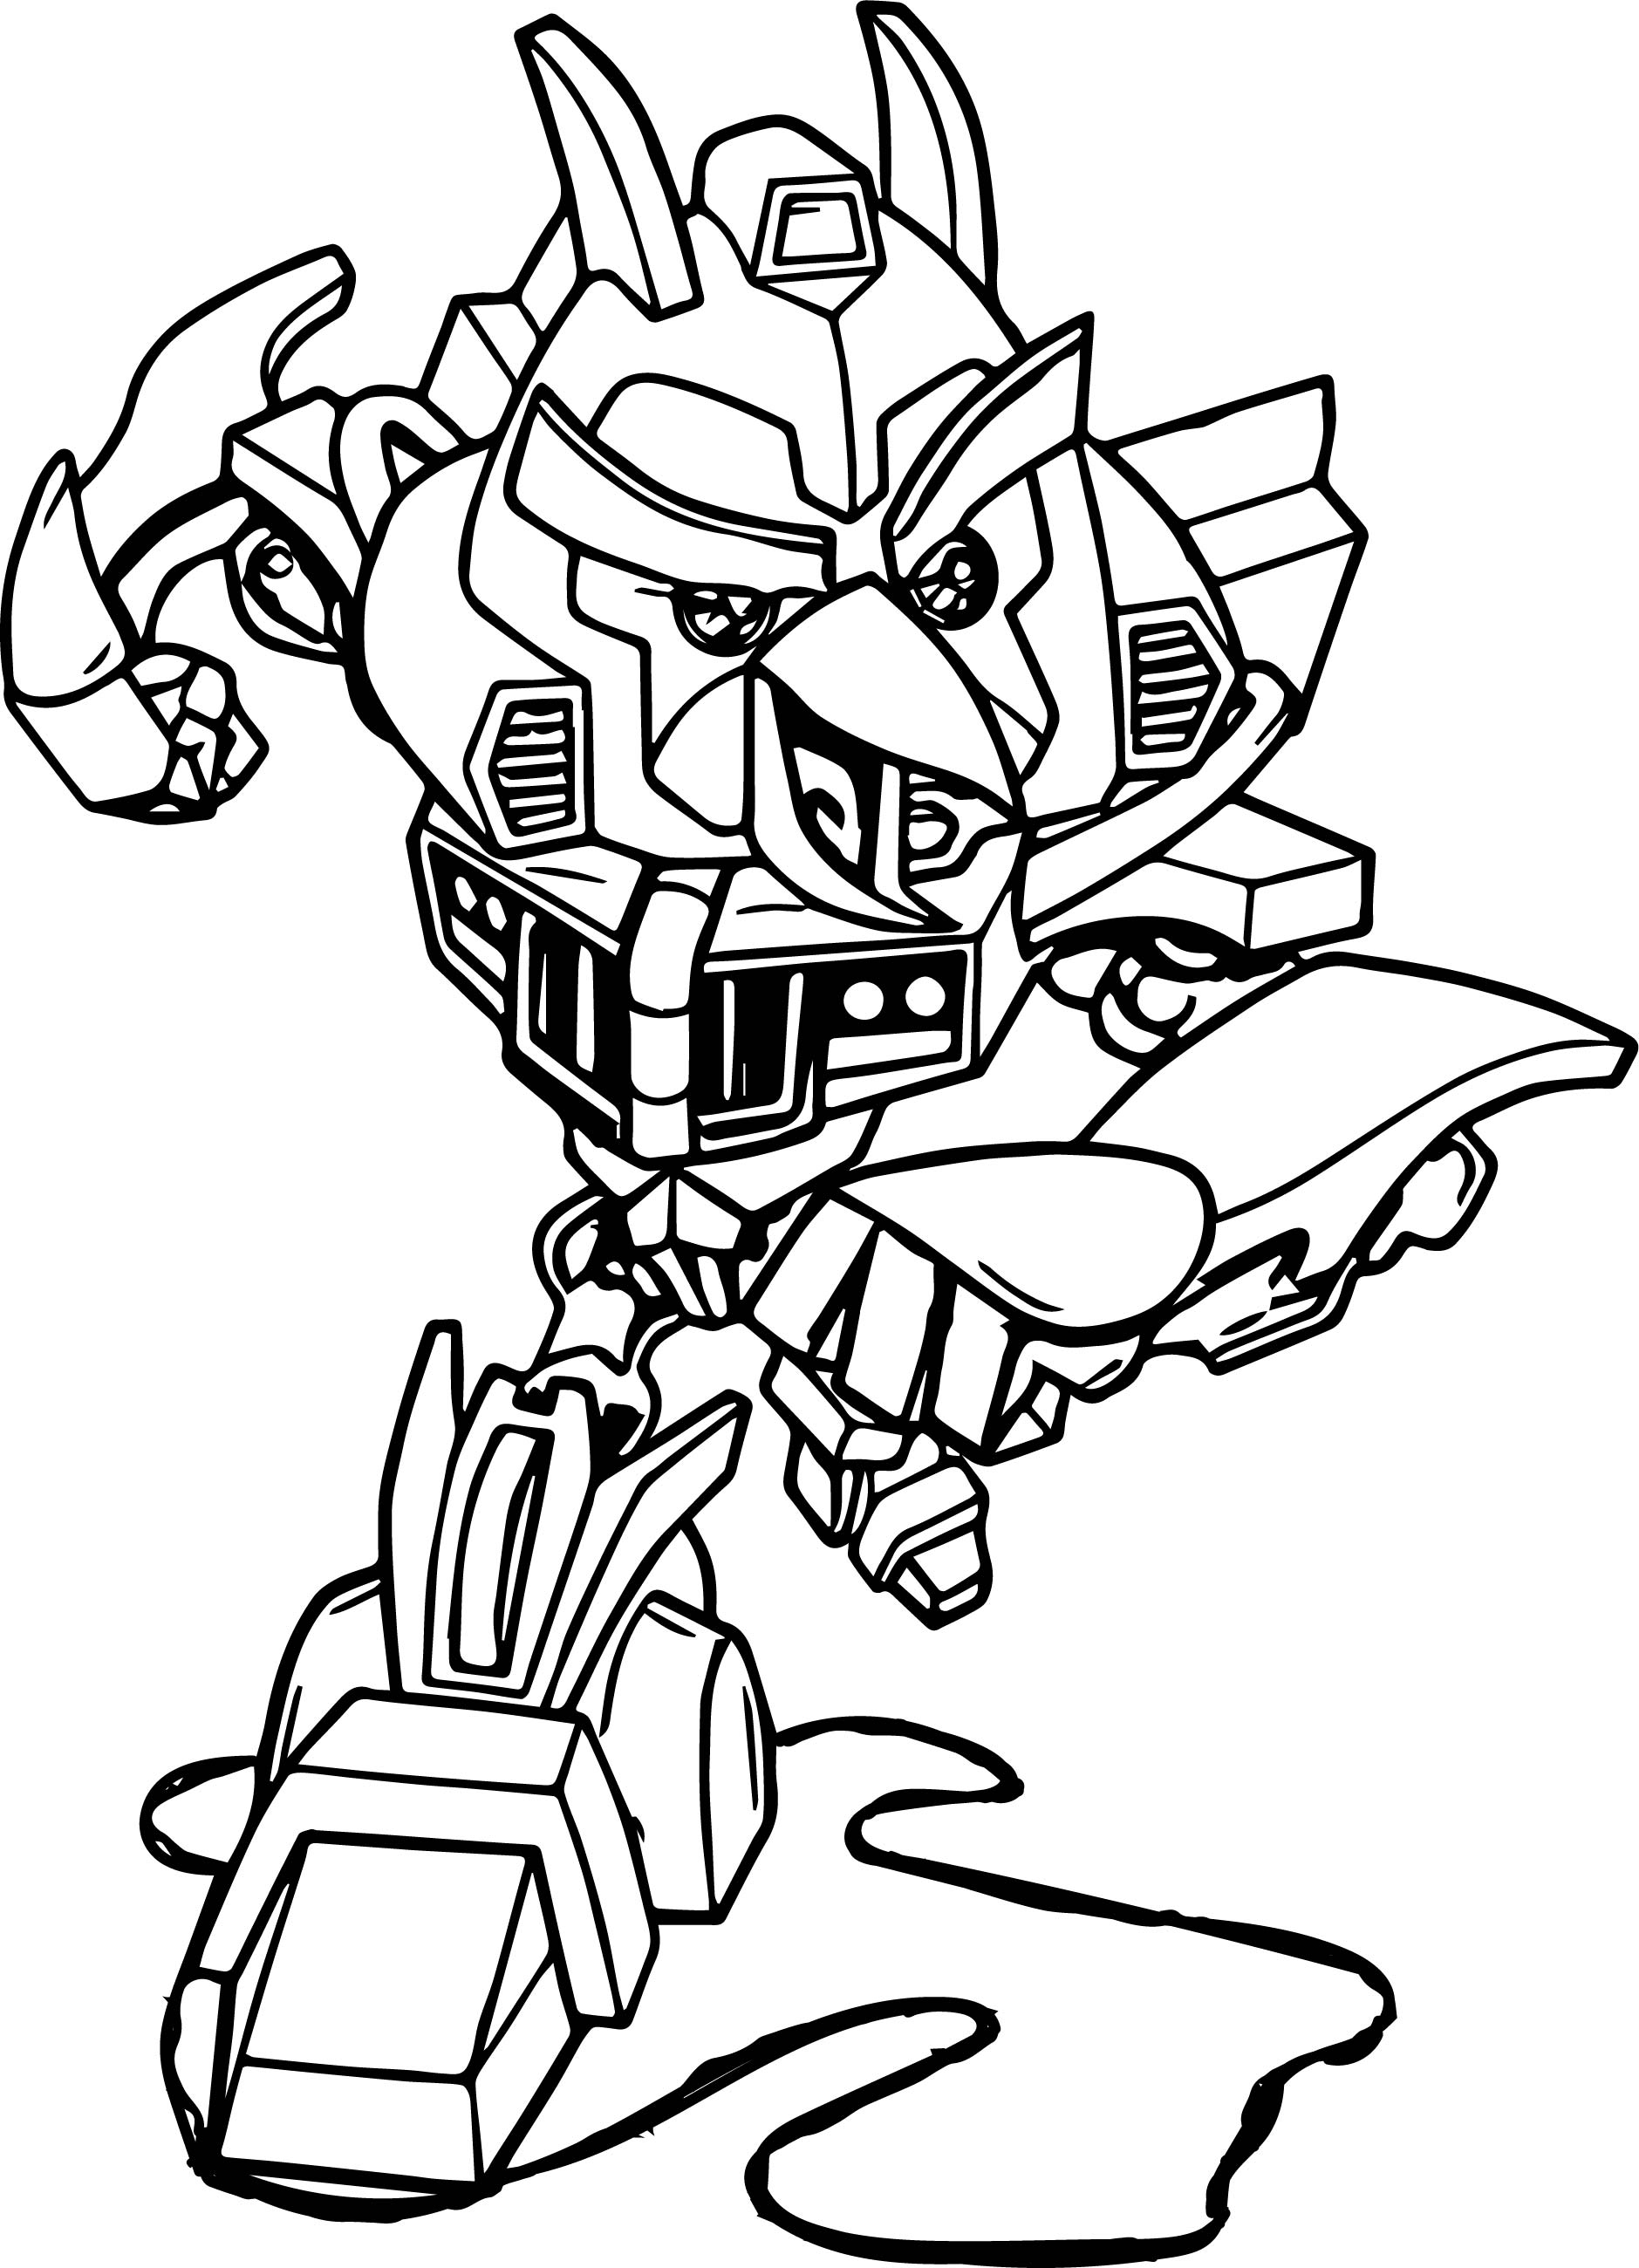 transformer for coloring lego transformers coloring pages at getcoloringscom transformer for coloring